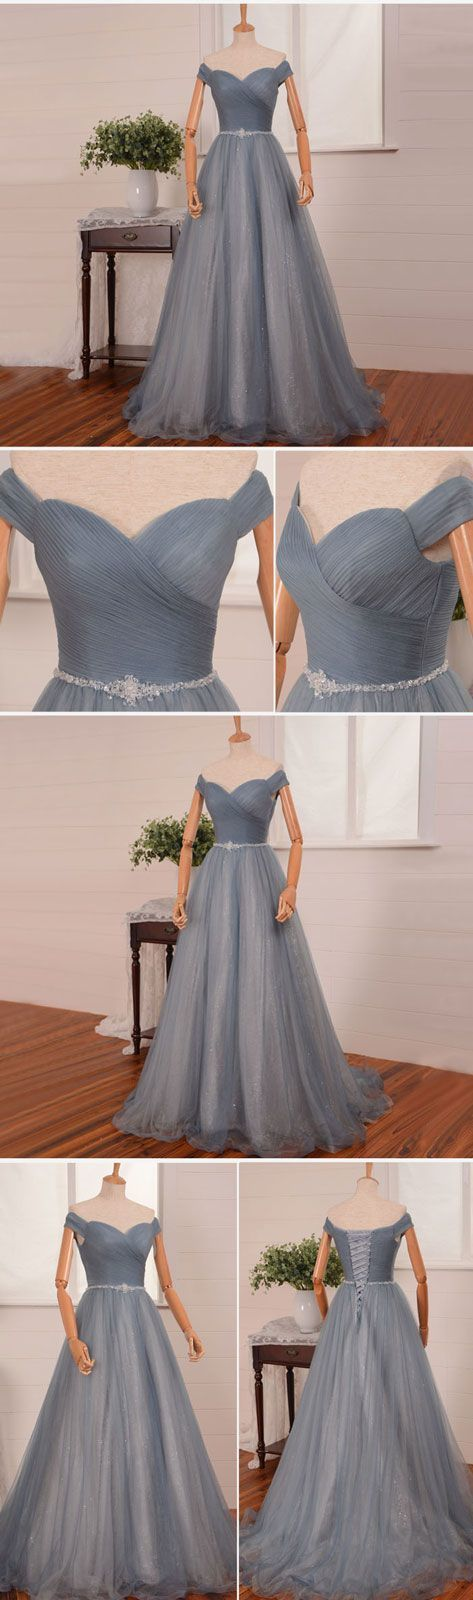 simple gray tulle long tulle prom dress, gray evening dress, gray bridesmaid